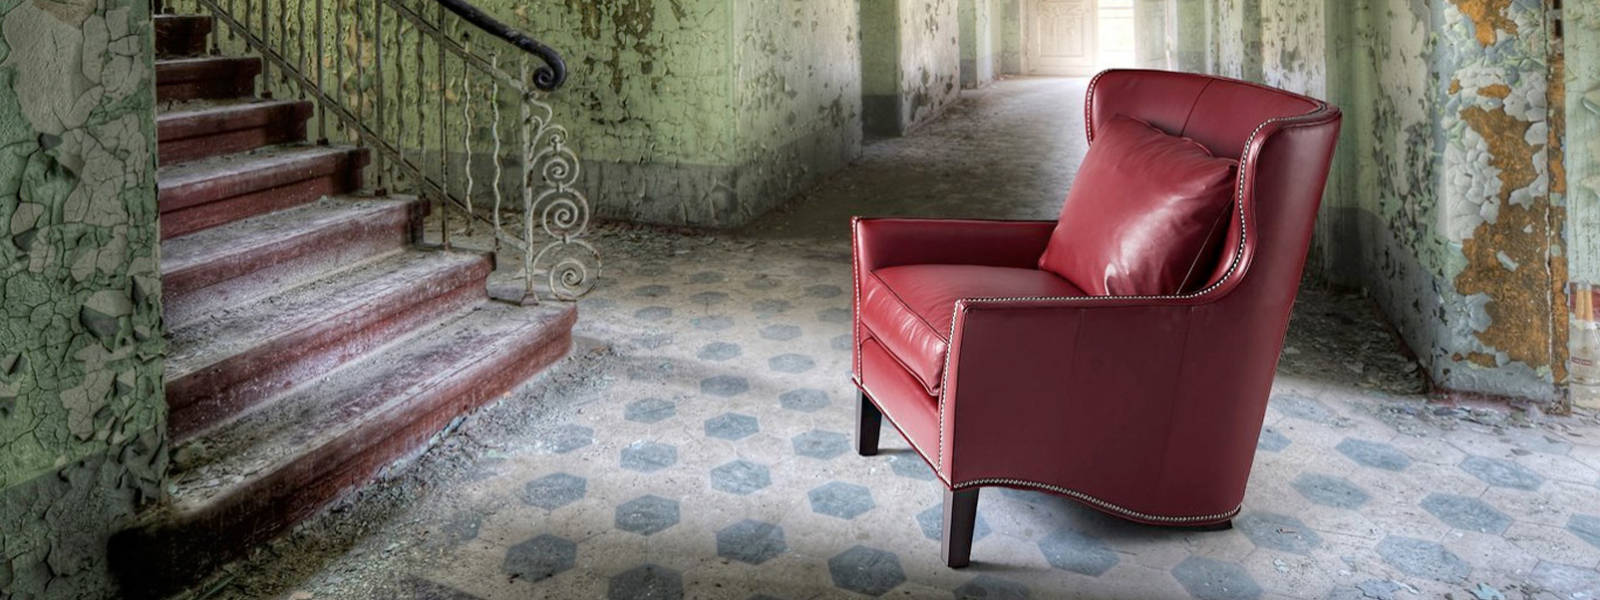 sofa and chairs bloomington mn what product can i use to clean my sofas of minnesota custom made furniture minneapols st